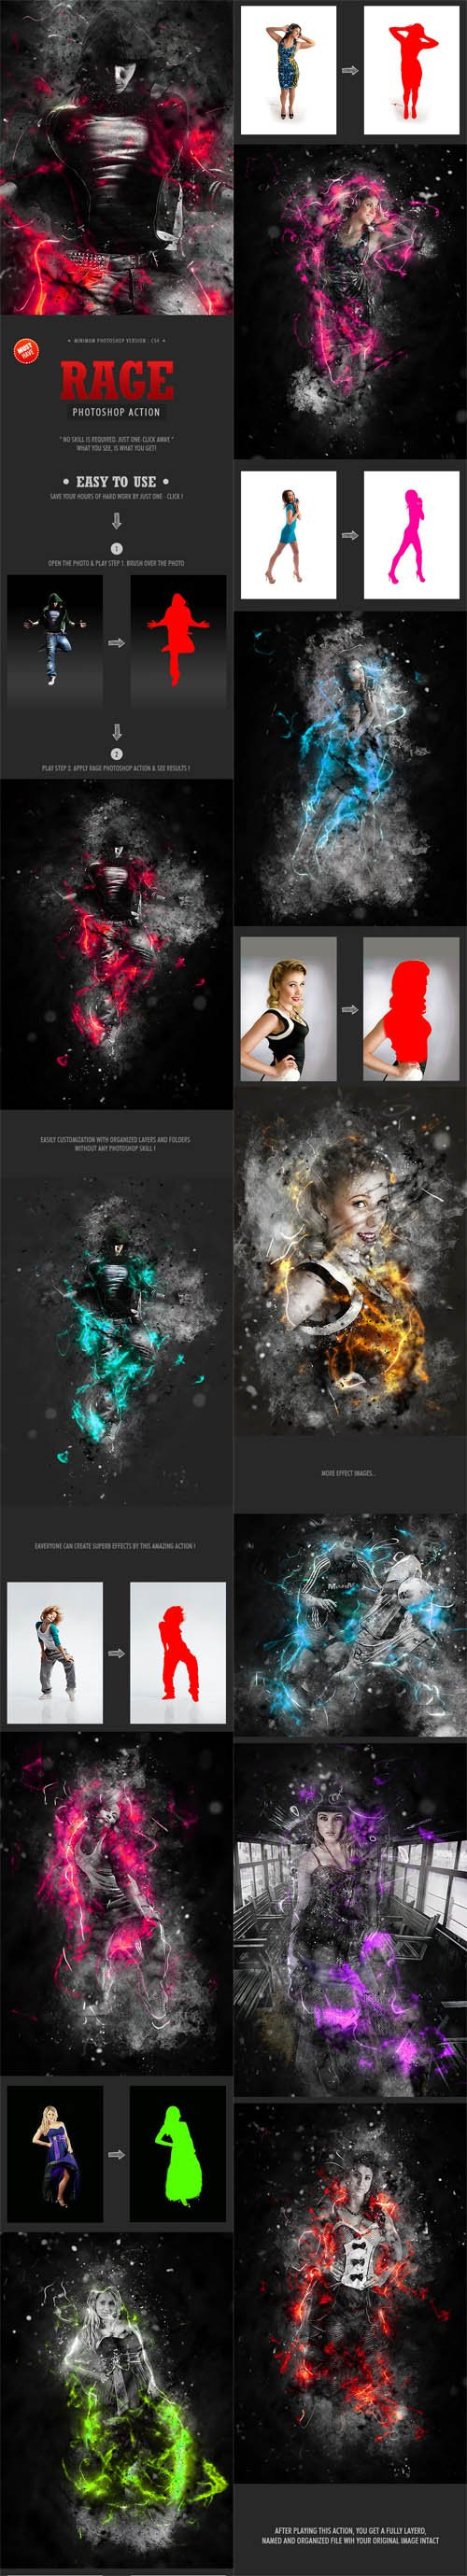 GraphicRiver - Rage Photoshop Action 13948990